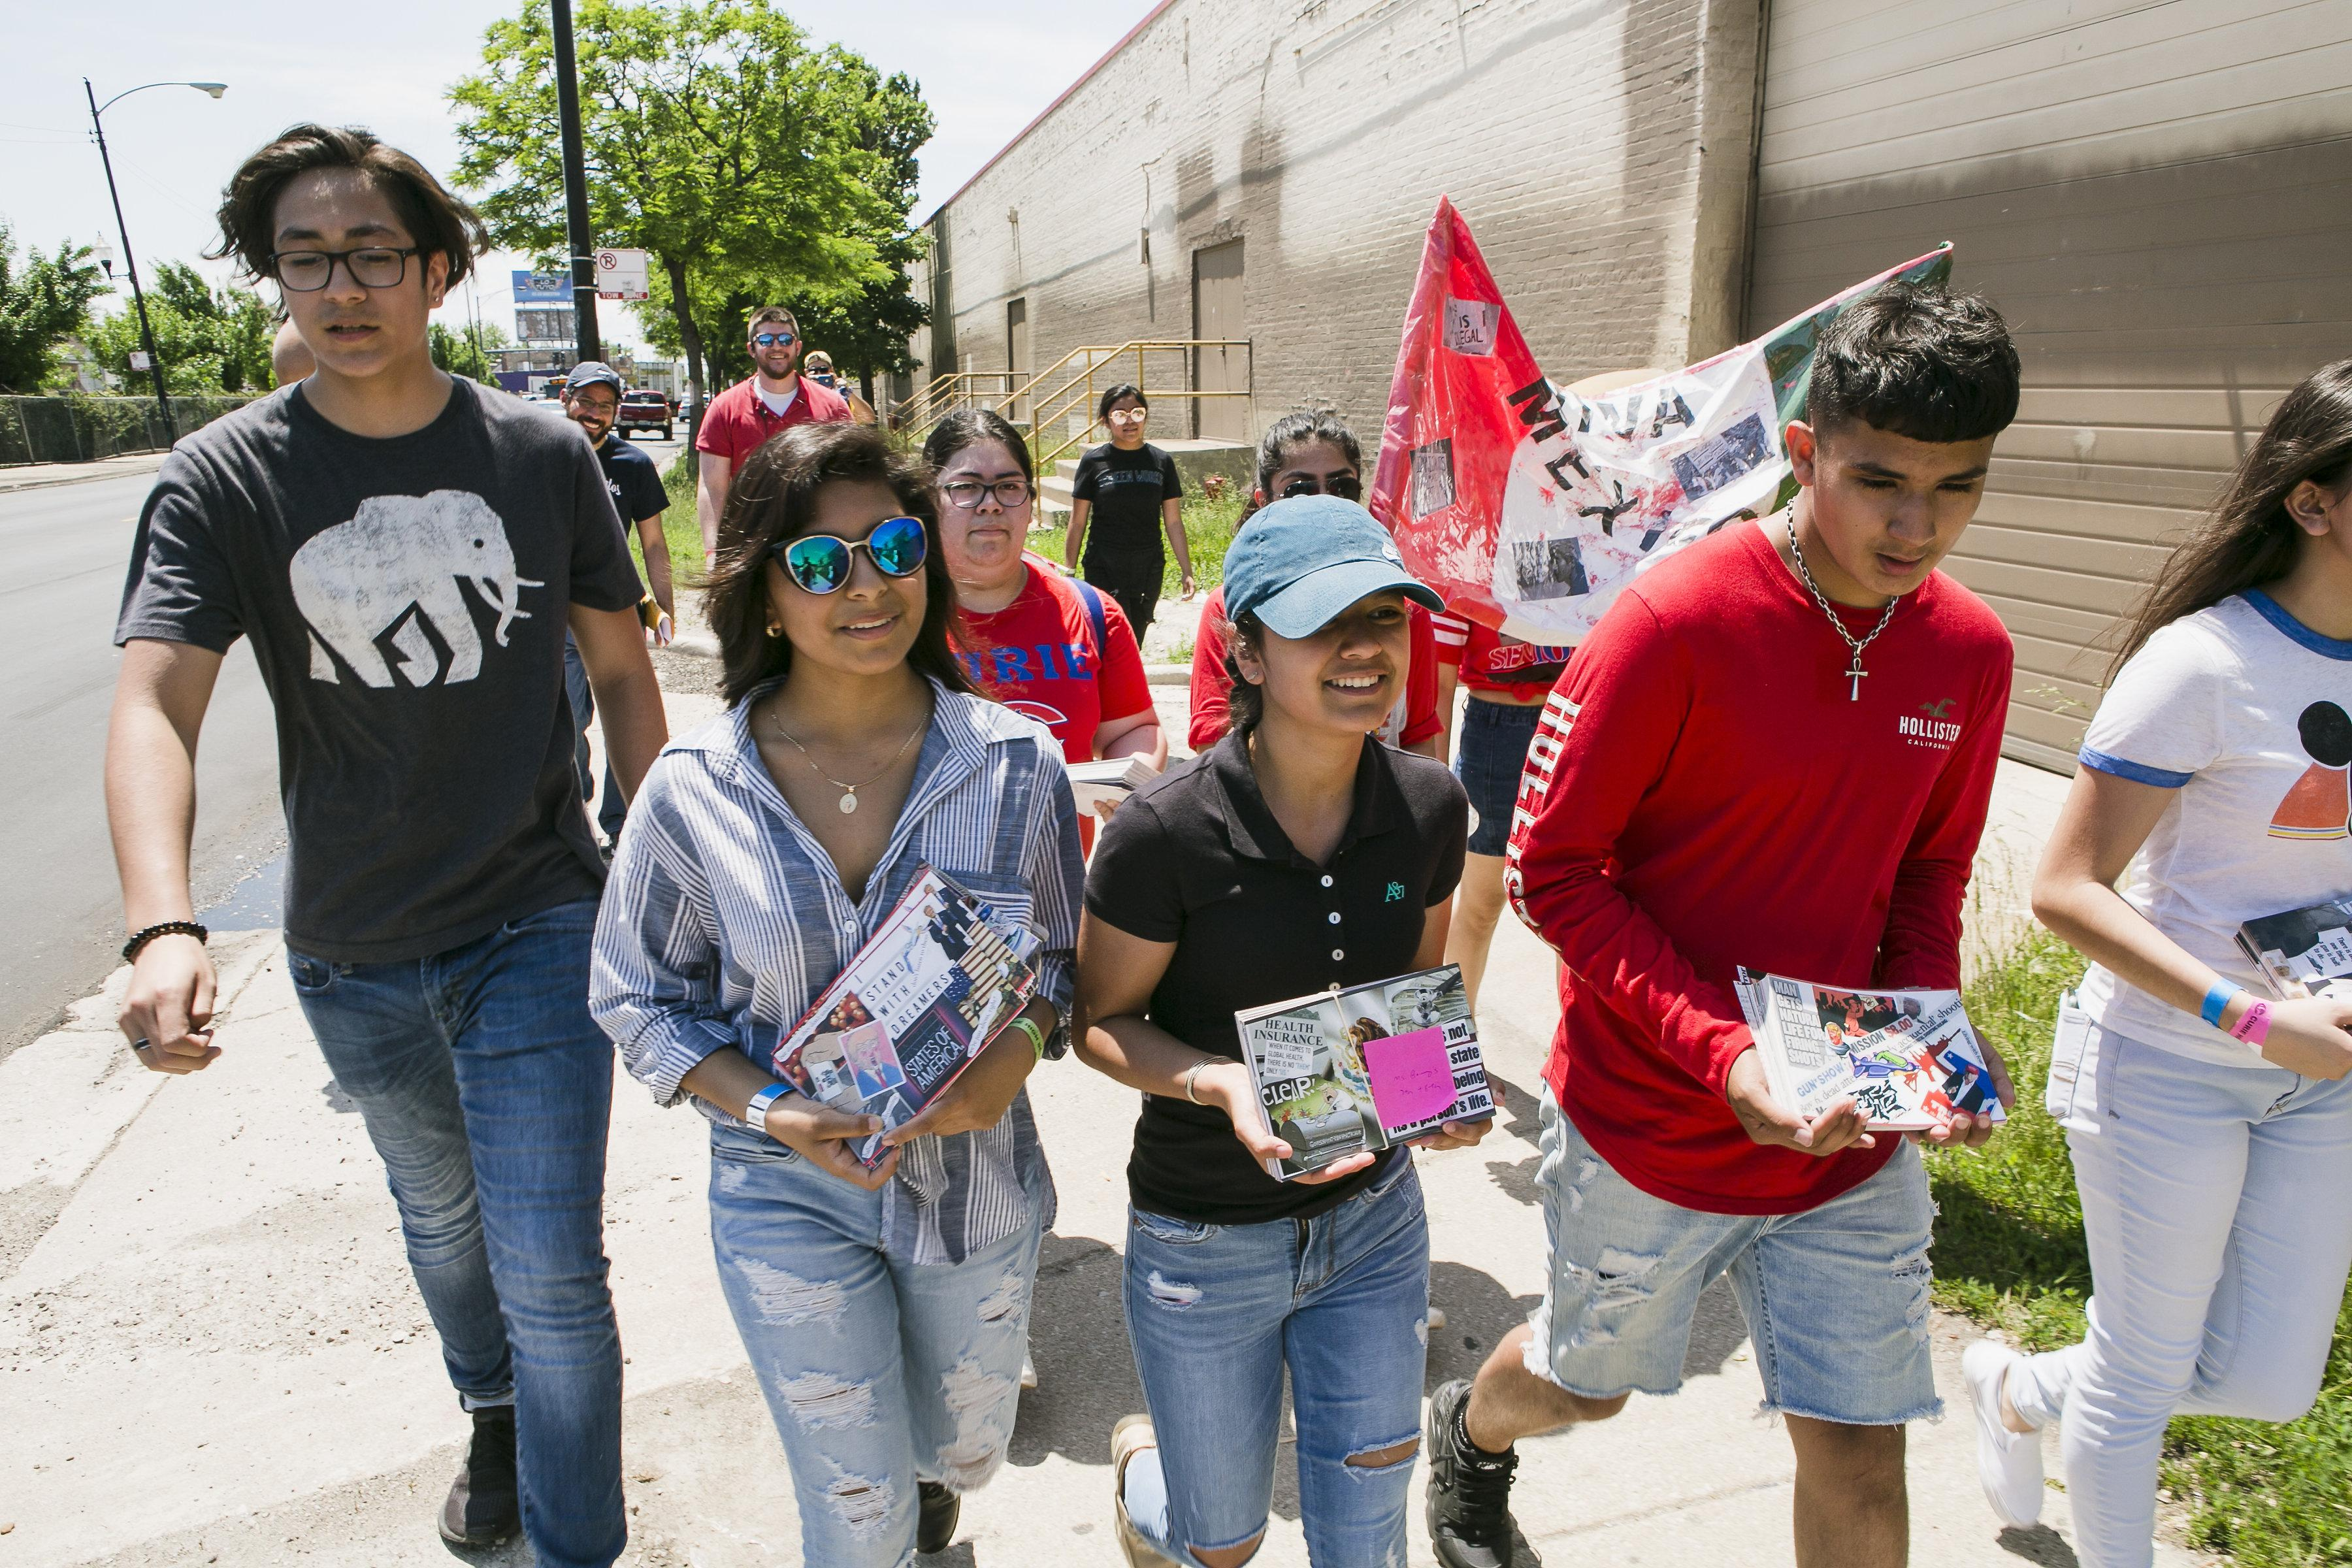 Nearly a dozen young people walking down a city sidewalk carry large postcards and a decorated flag of Mexico.